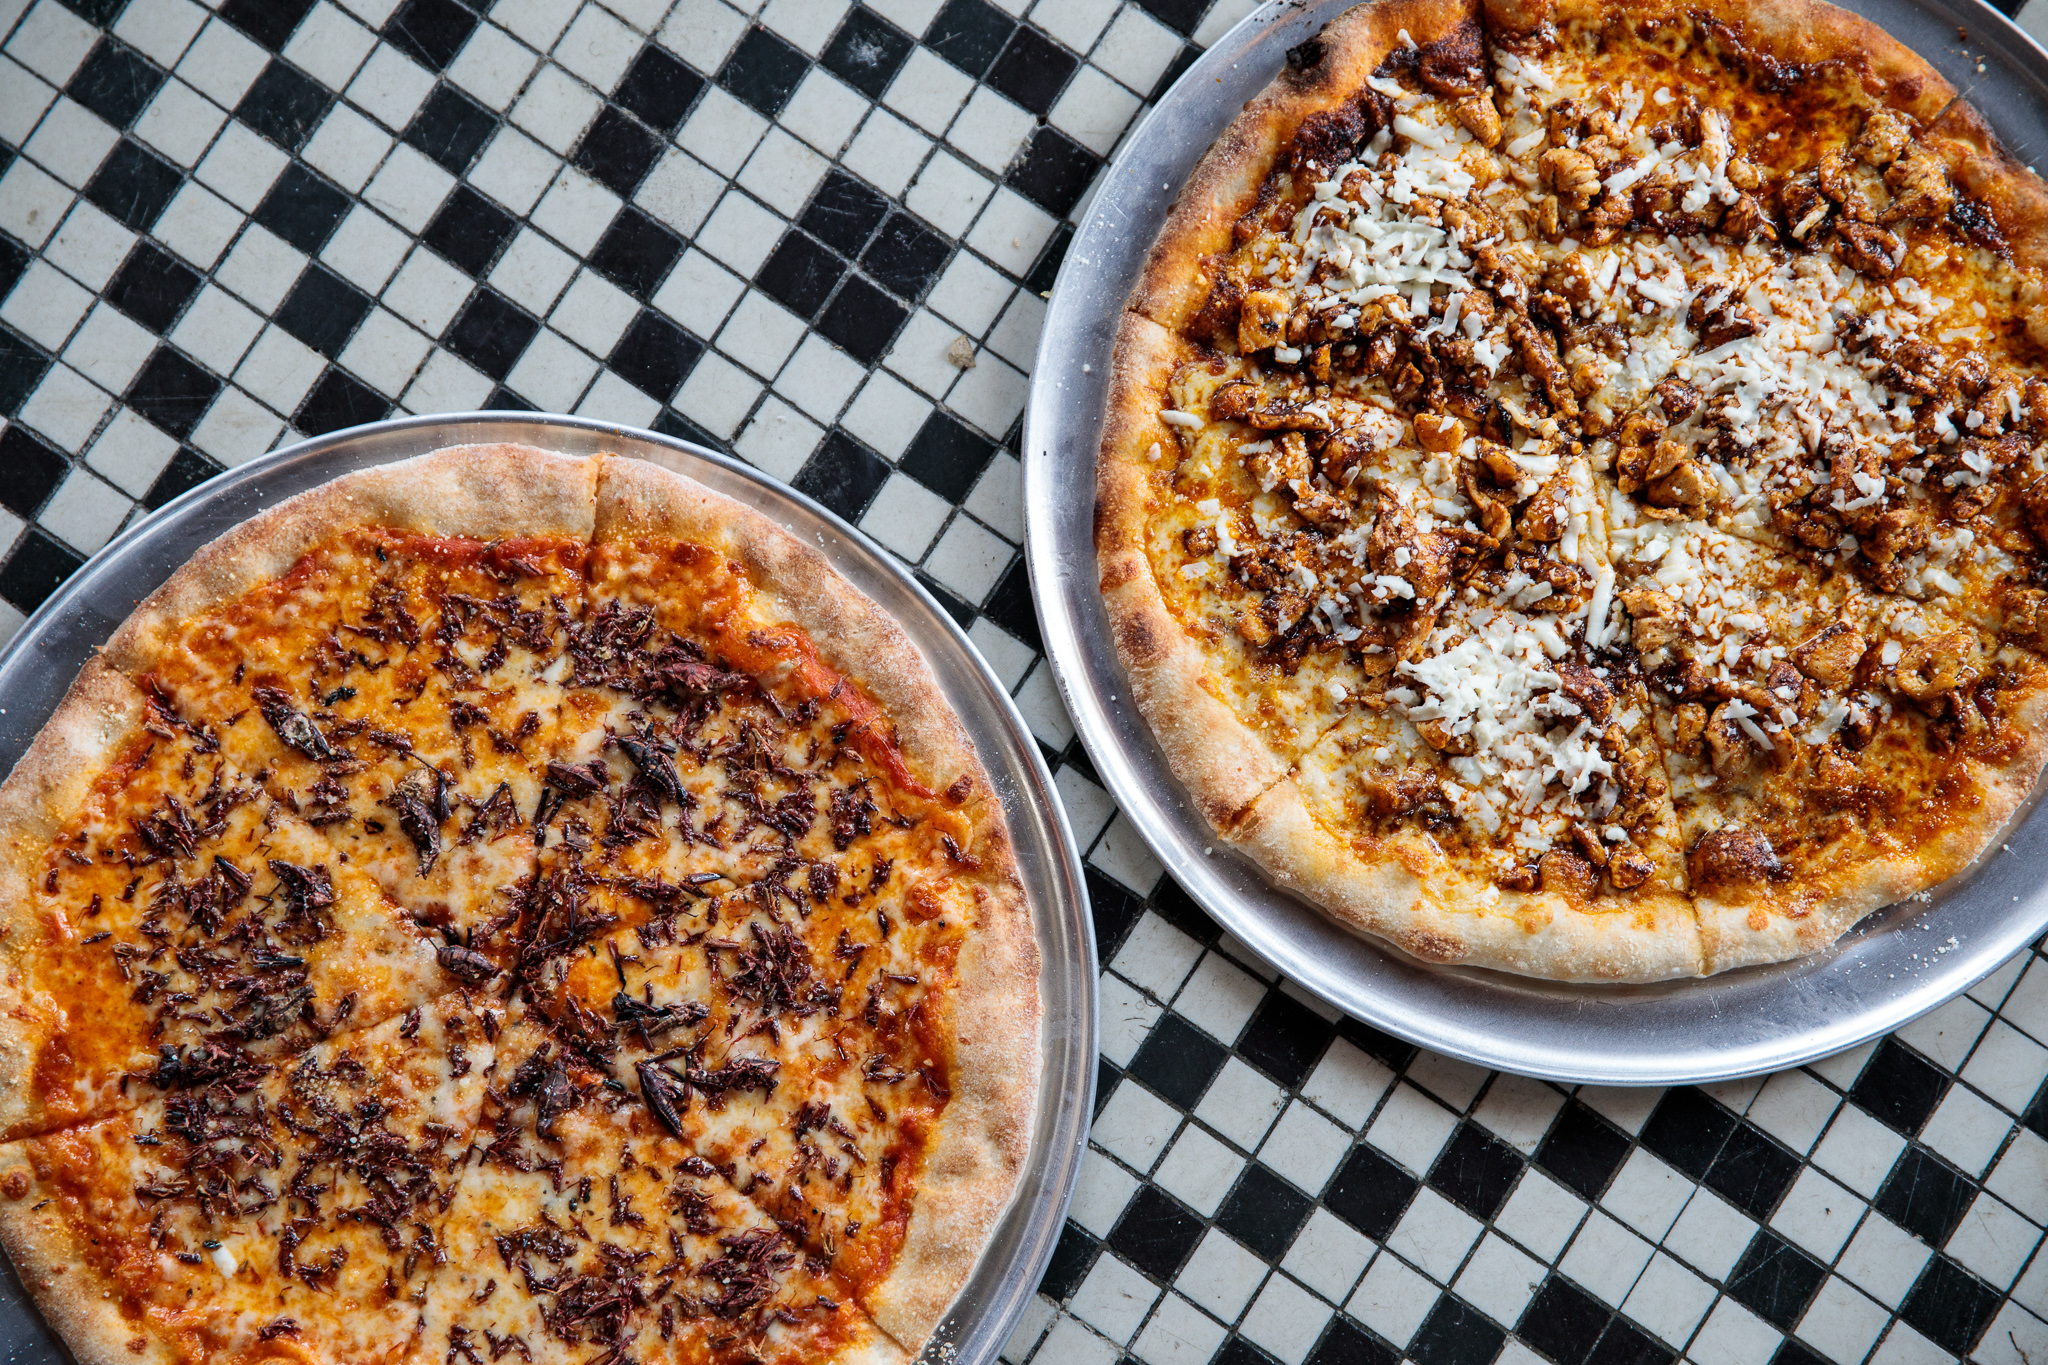 A chicken mole pizza and a chapulines cricket pizza on a checkered tile floor.